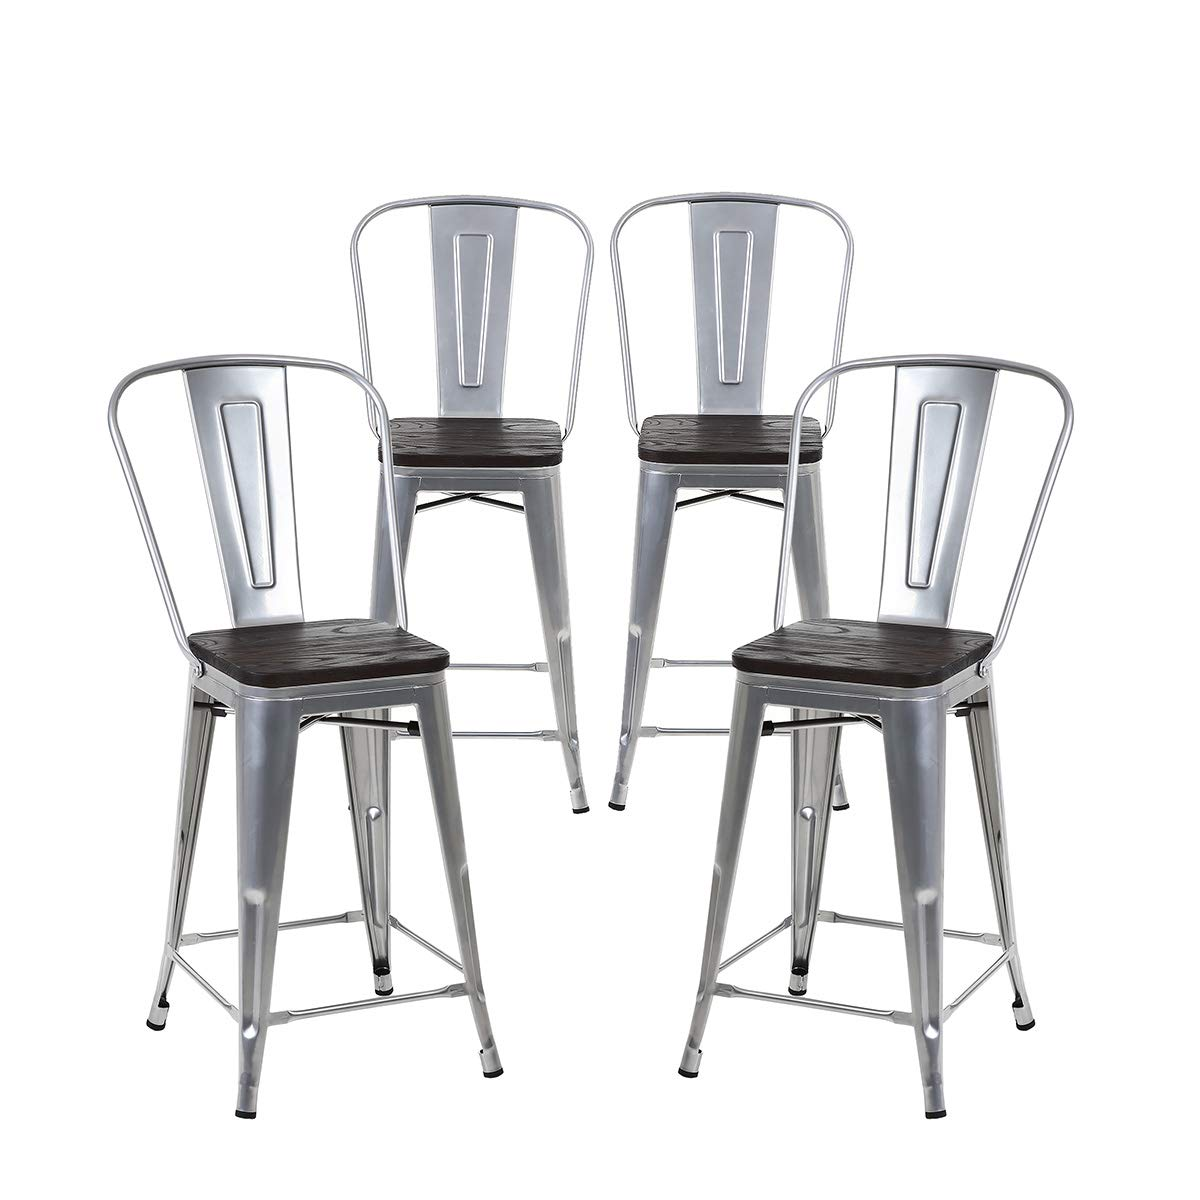 Buschman Set of 4 Grey Wooden Seat 24 Inch Counter Height Metal Bar Stools with High Back, Indoor/Outdoor by Buschman Store